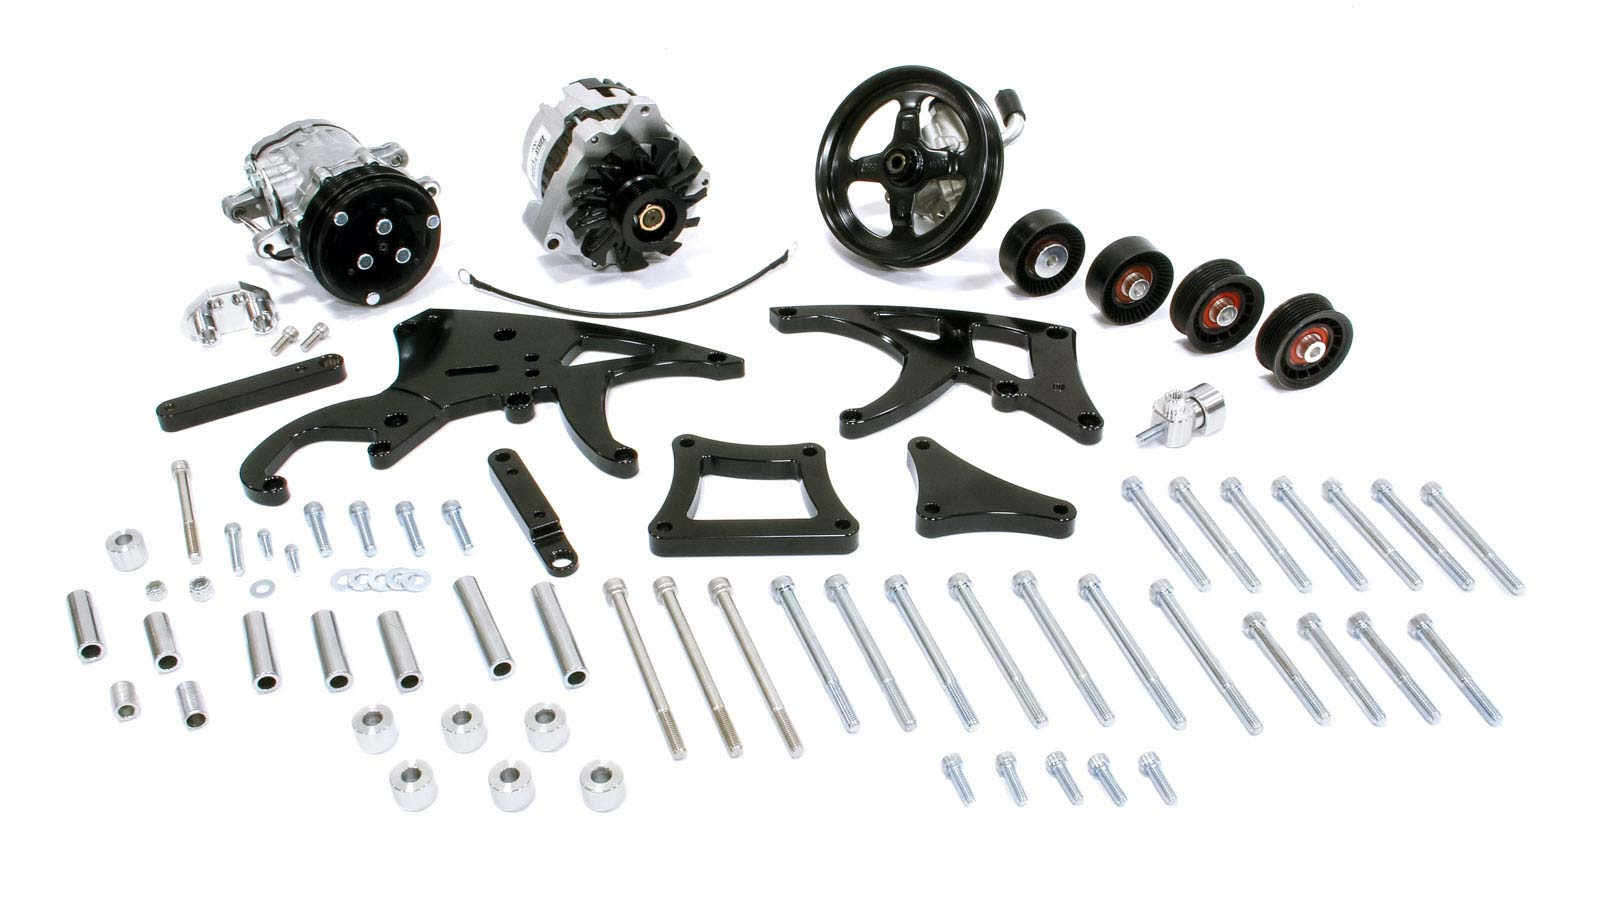 March Performance Gm Ls Series Sport Track Pulley Kit